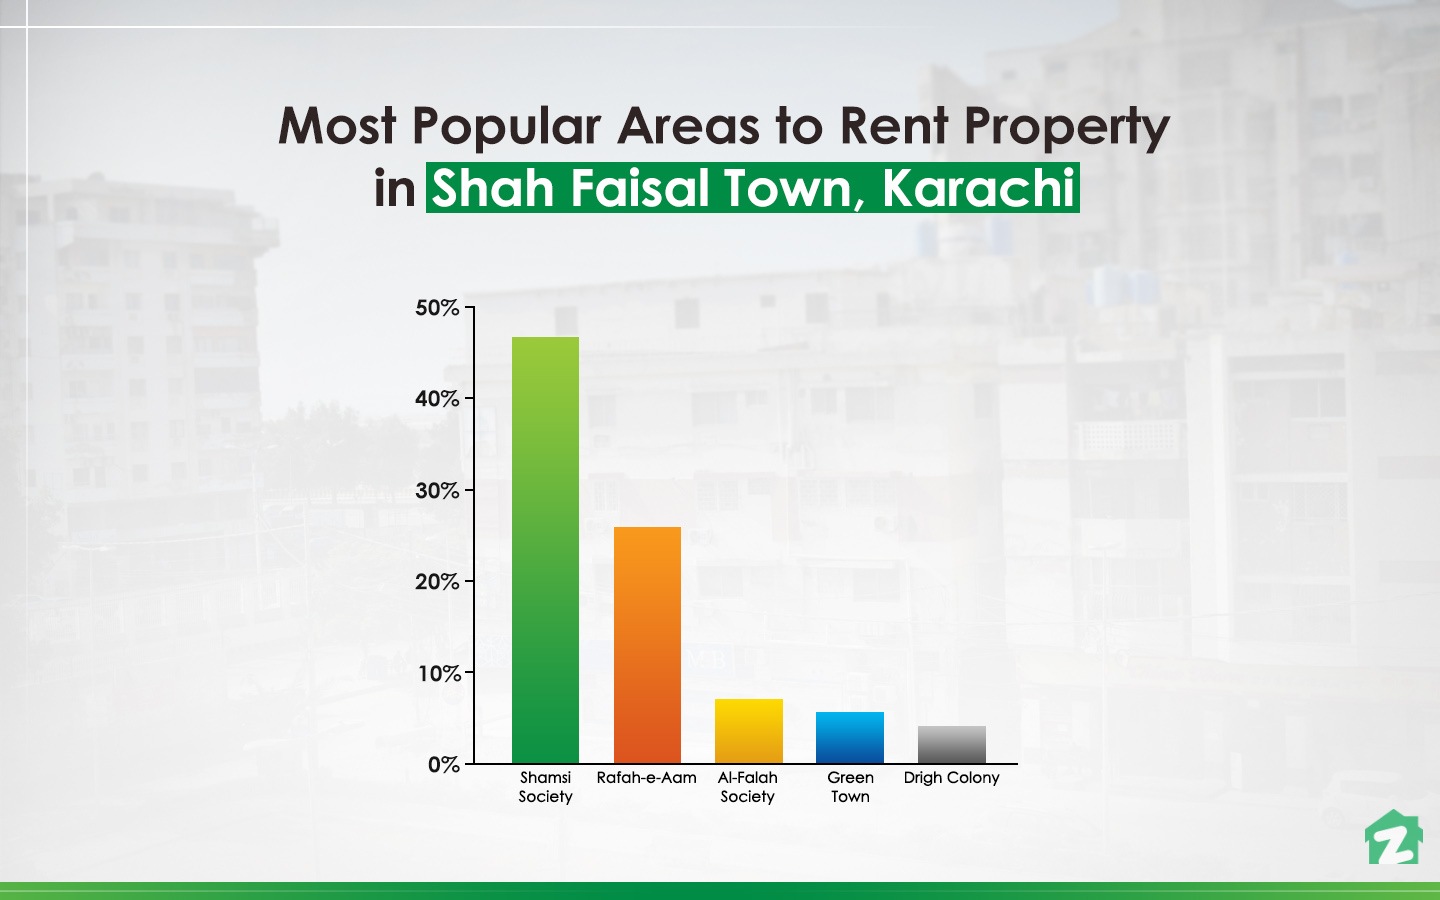 Popular areas among rent-seekers in Shah Faisal Town